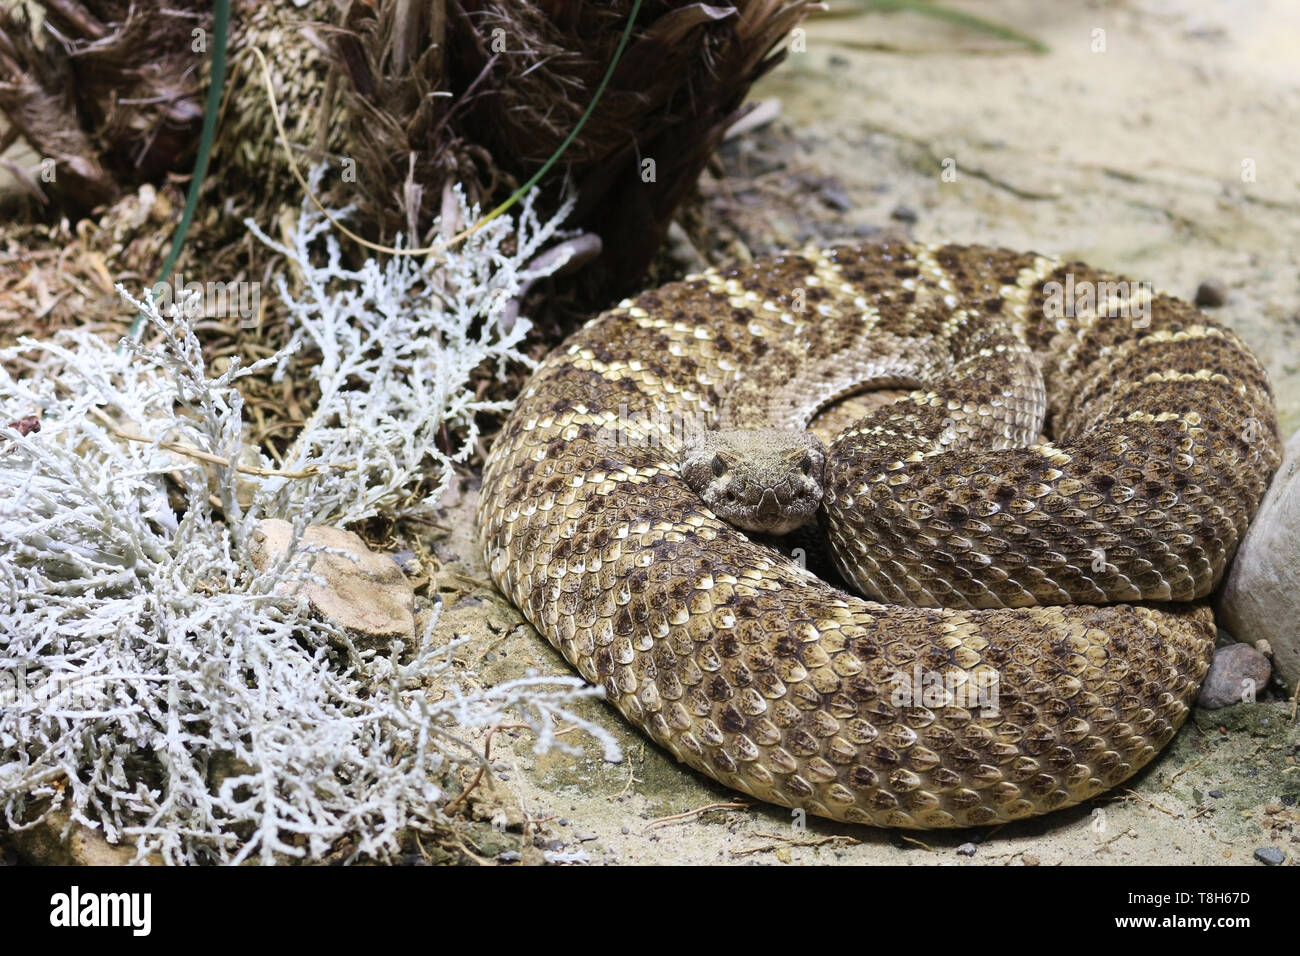 The rattlesnake possesses a neurotoxic venom, which acts on the nervous system and causes the victim to have difficulty in locomotion and breathing - Stock Image